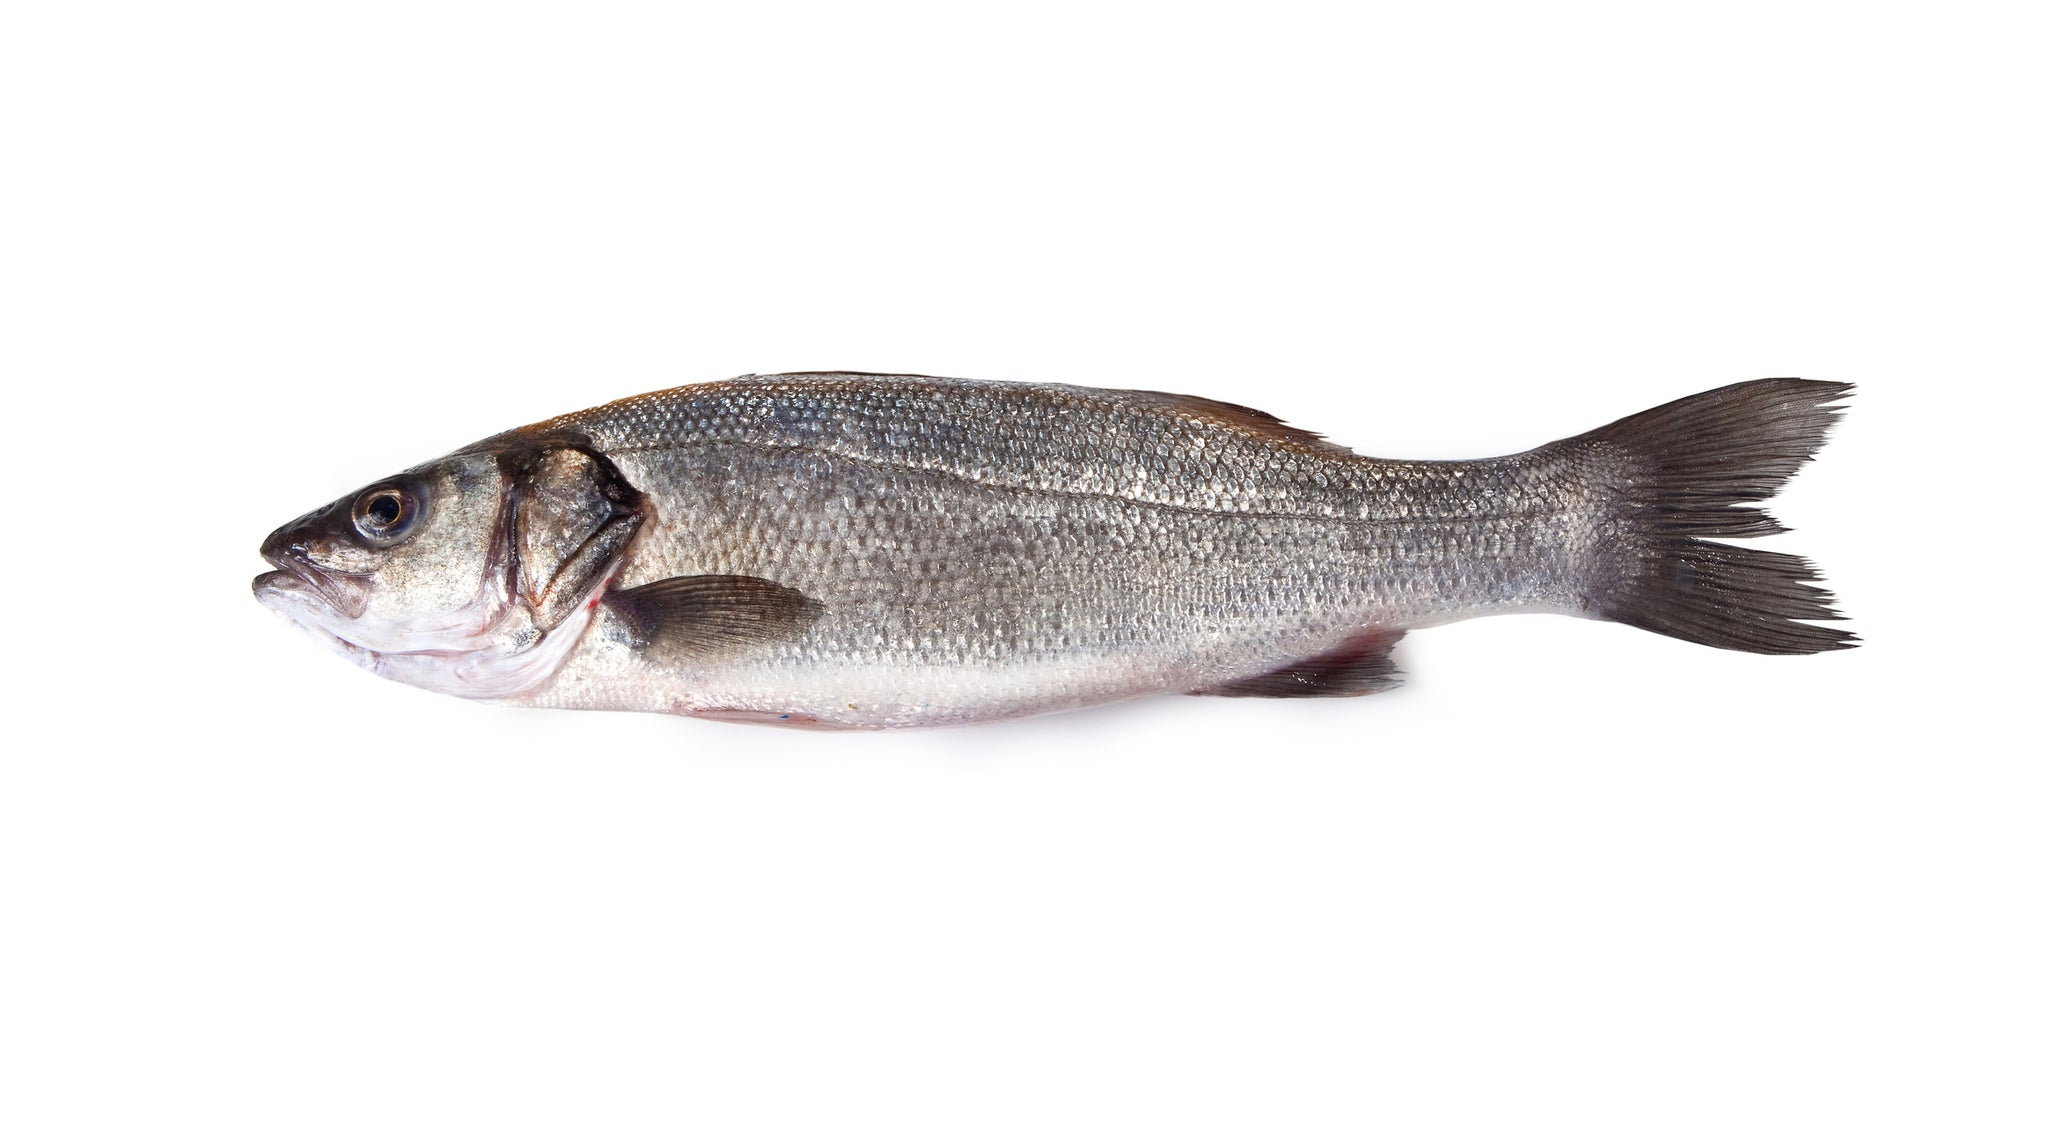 Branzino - Whole, Scaled, Cleaned (Local) - avg 1 lb